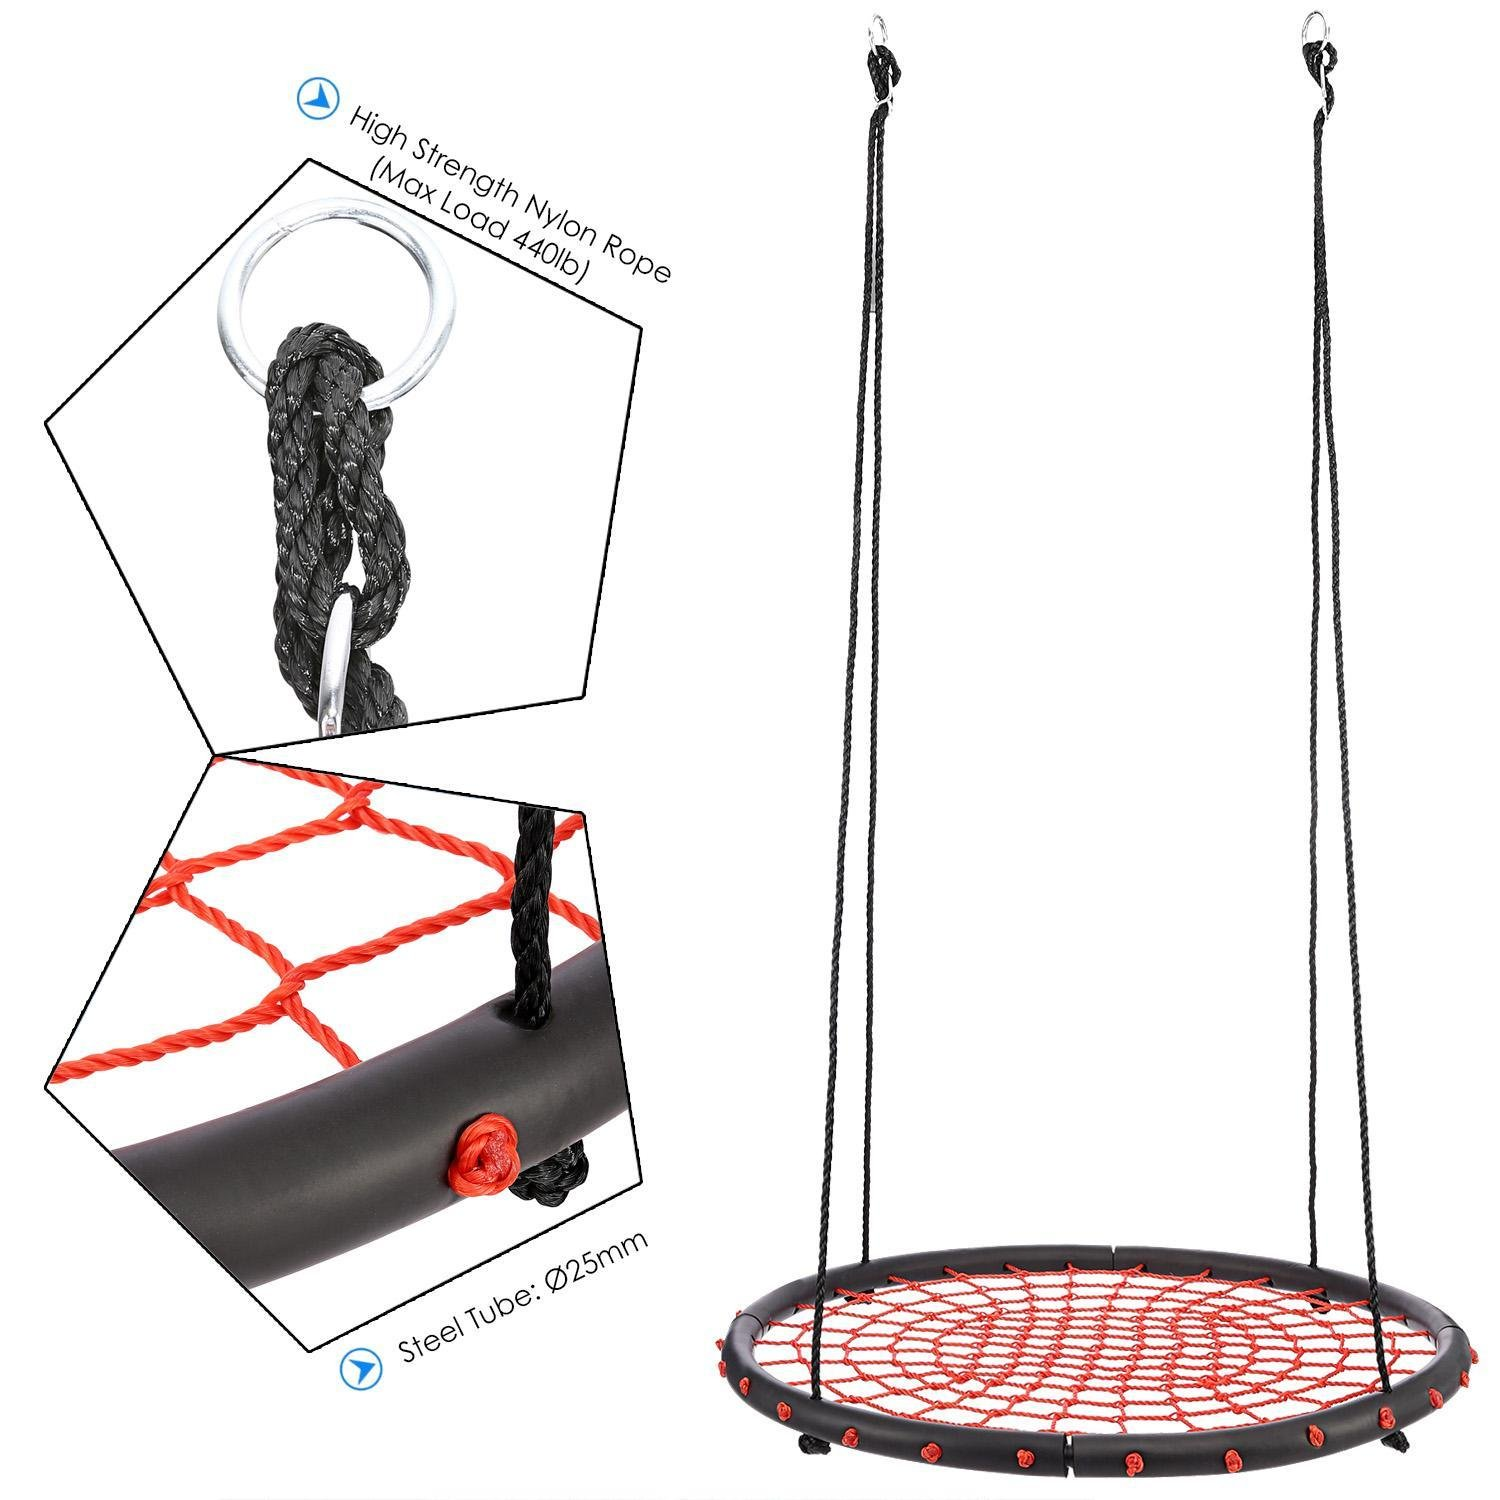 Rapesee Spider Web Round Swing, 39.4 Inch diameter, Adjustable hanging ropes, Great for Playground, Tree, Outdoor Use red